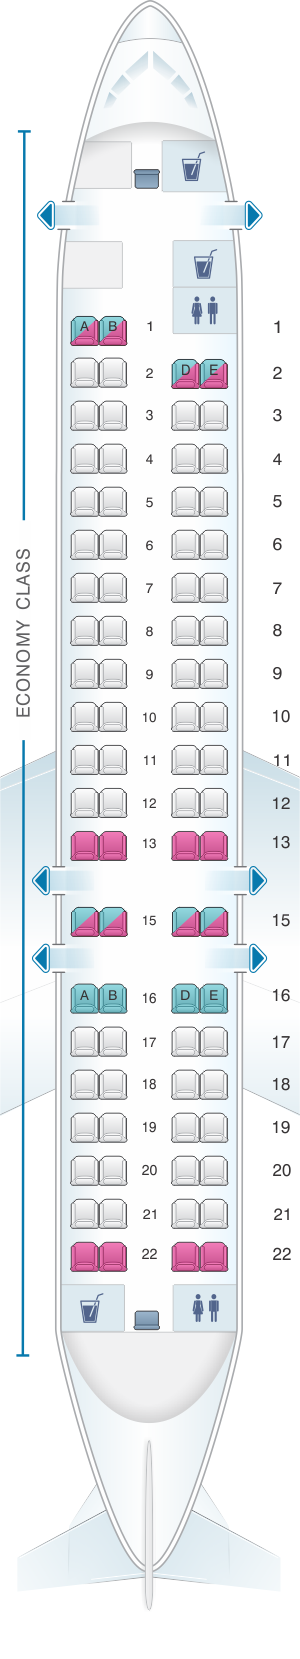 Seat map for Air Serbia Bombardier CRJ-900